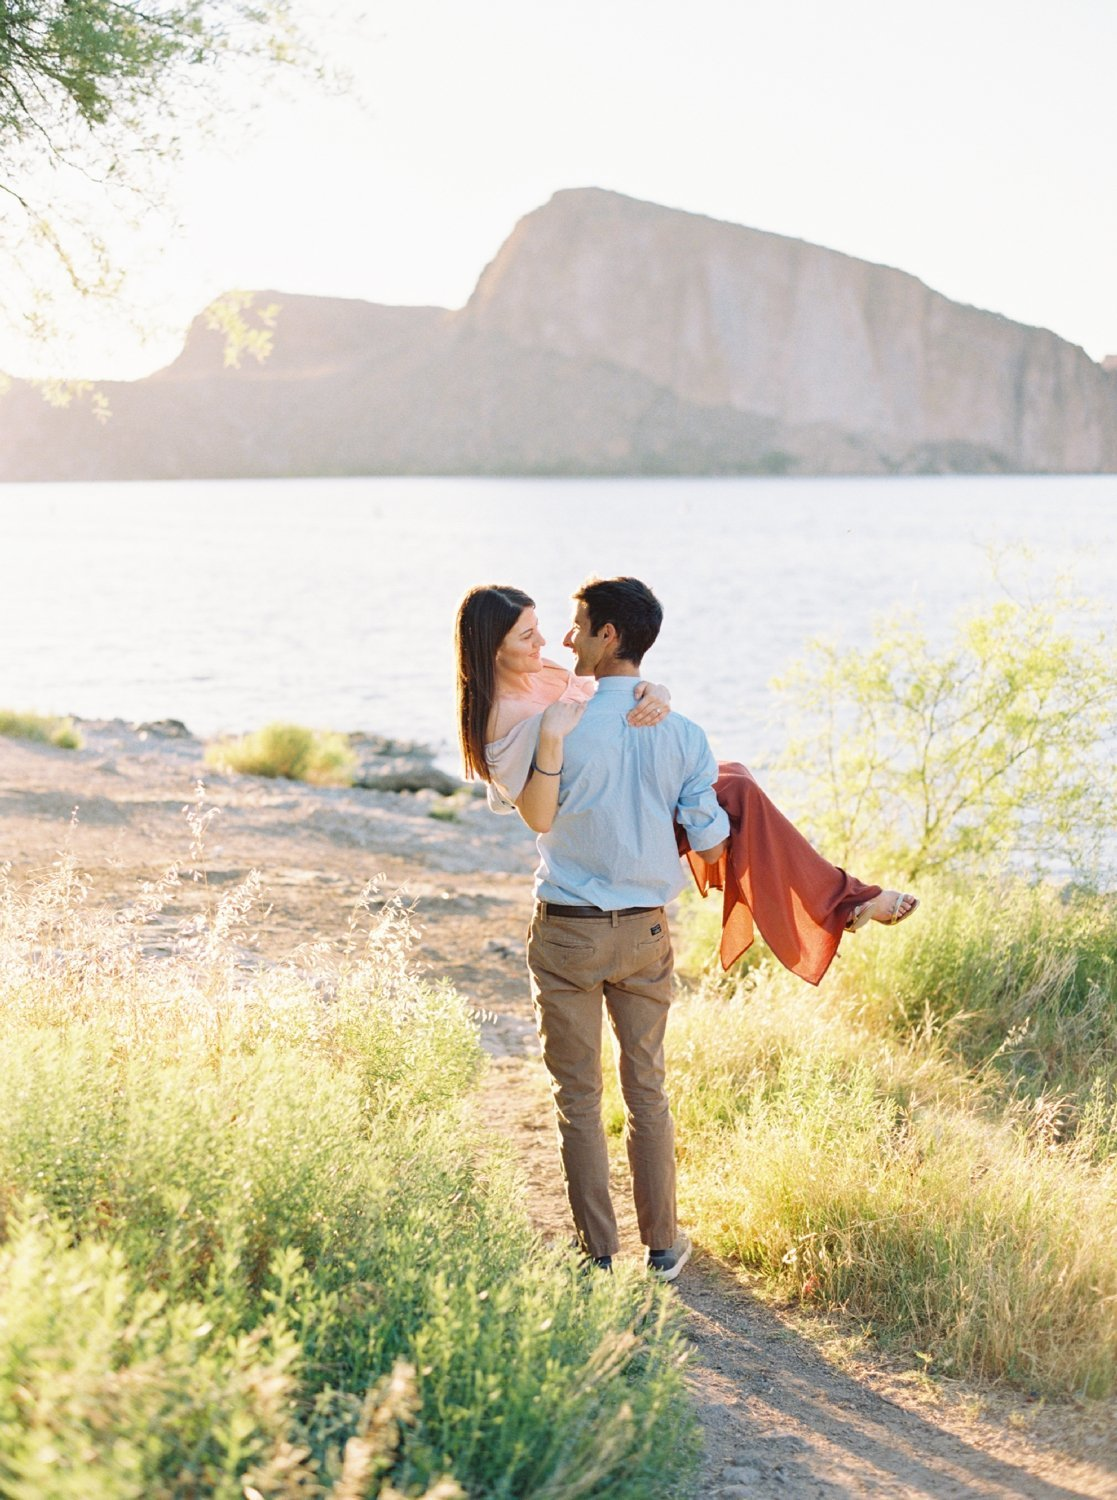 lake-arizona-engagement-session-wedding-photographer-Rachael-Koscica_0569